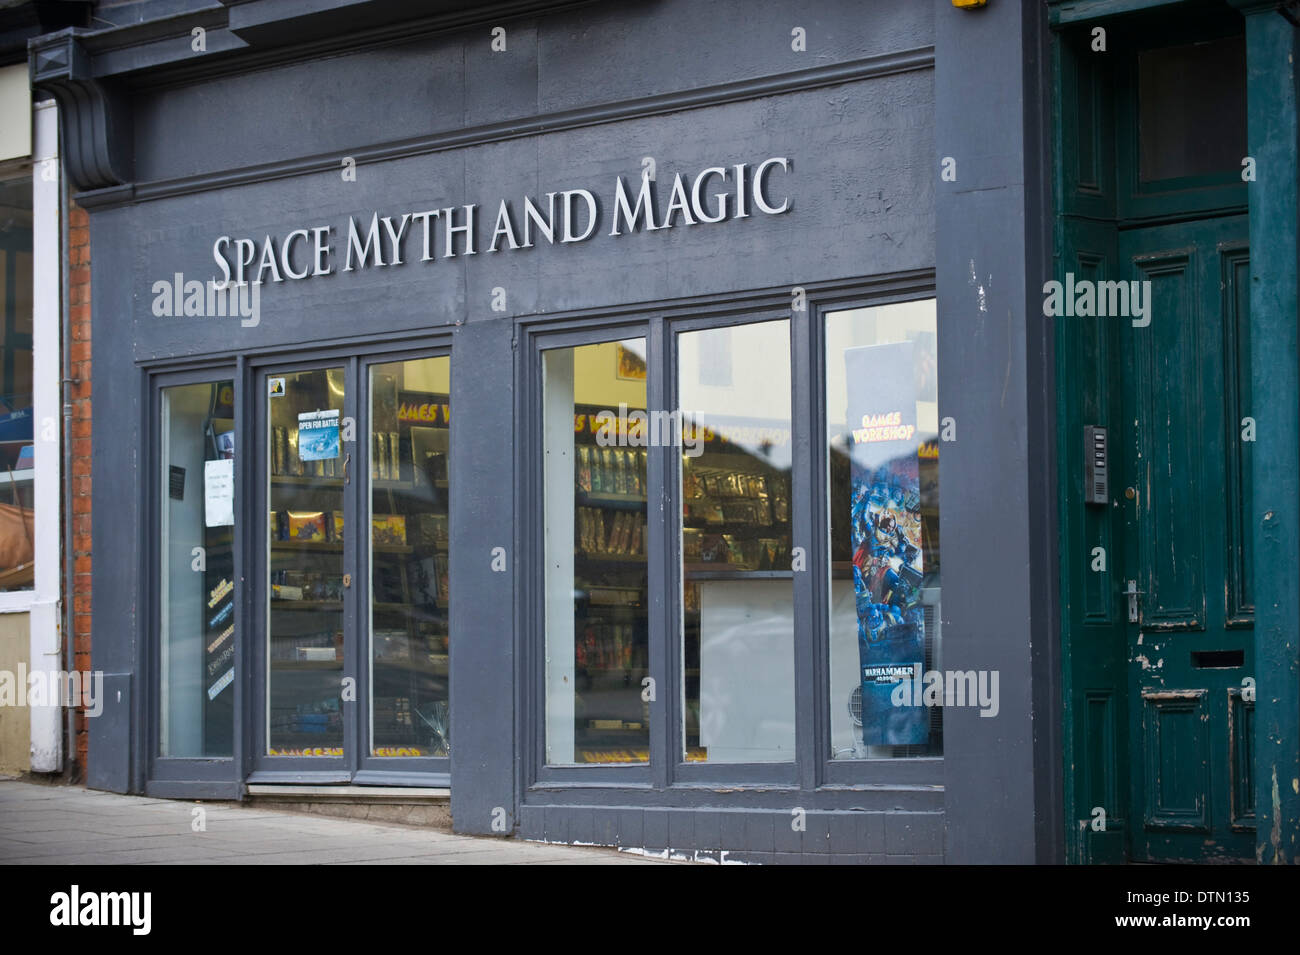 Space Myth and Magic shop in Scarborough North Yorkshire England UK - Stock Image